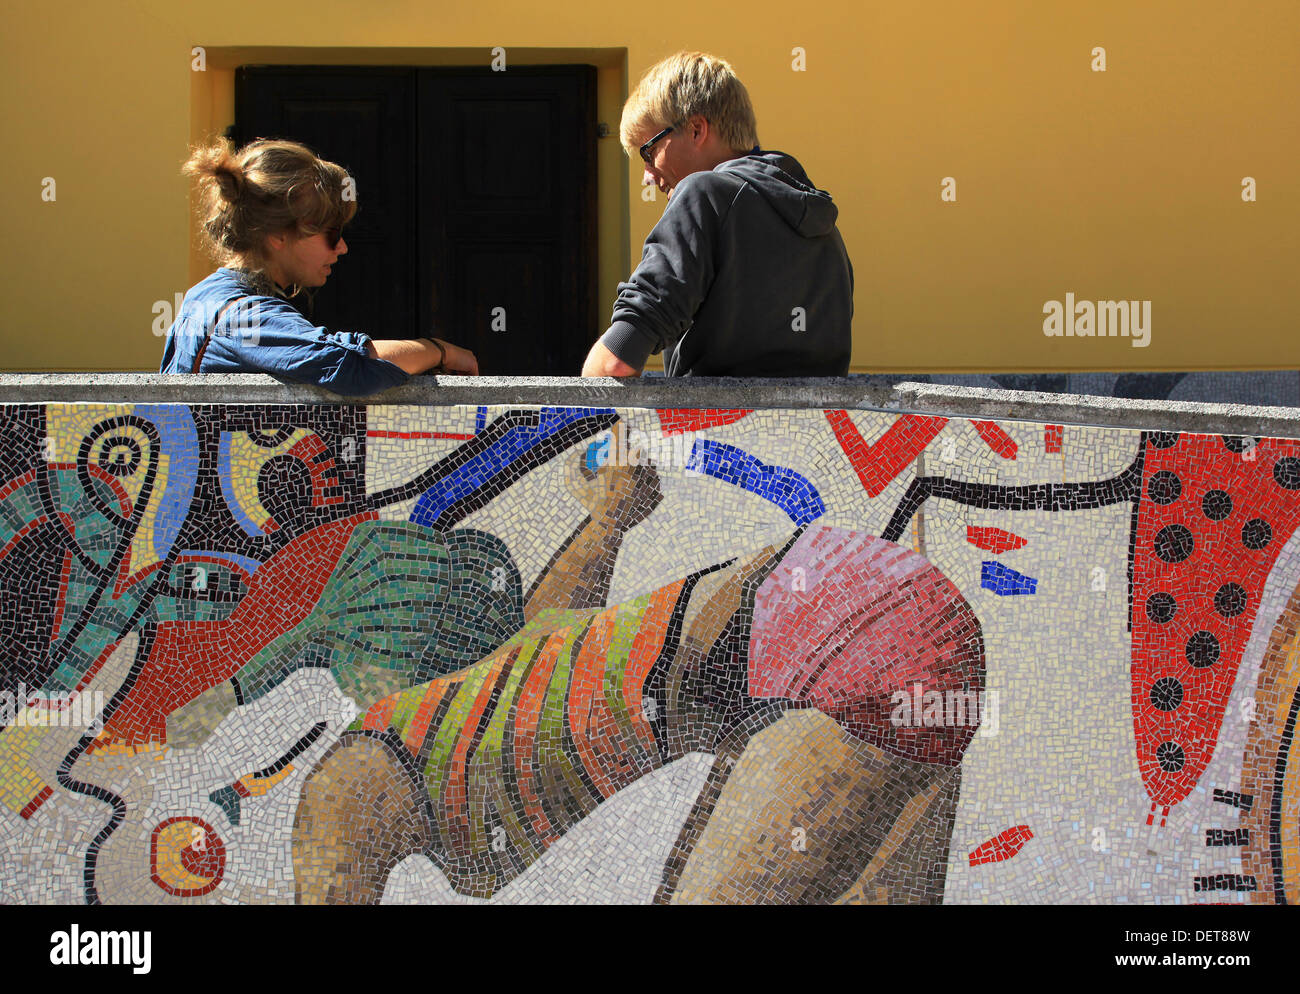 Students of the Friuli School of Mosaics (Scuola Mosaicisti del Friuli) seen in the schoolyard during a break. Spilimbergo,Italy - Stock Image